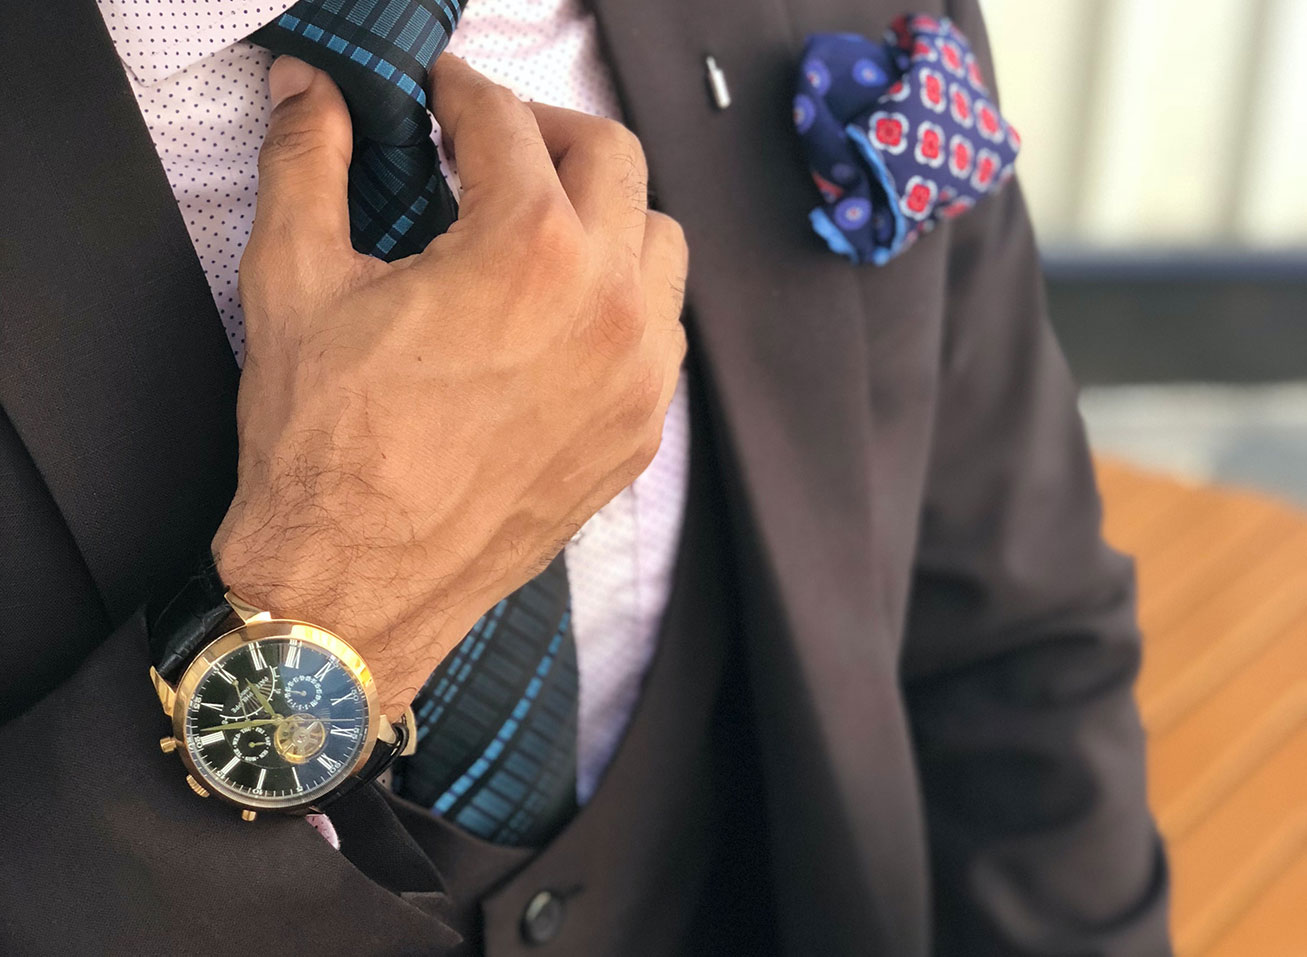 Luxury watches at The Thailand International Boat Show in Phuket